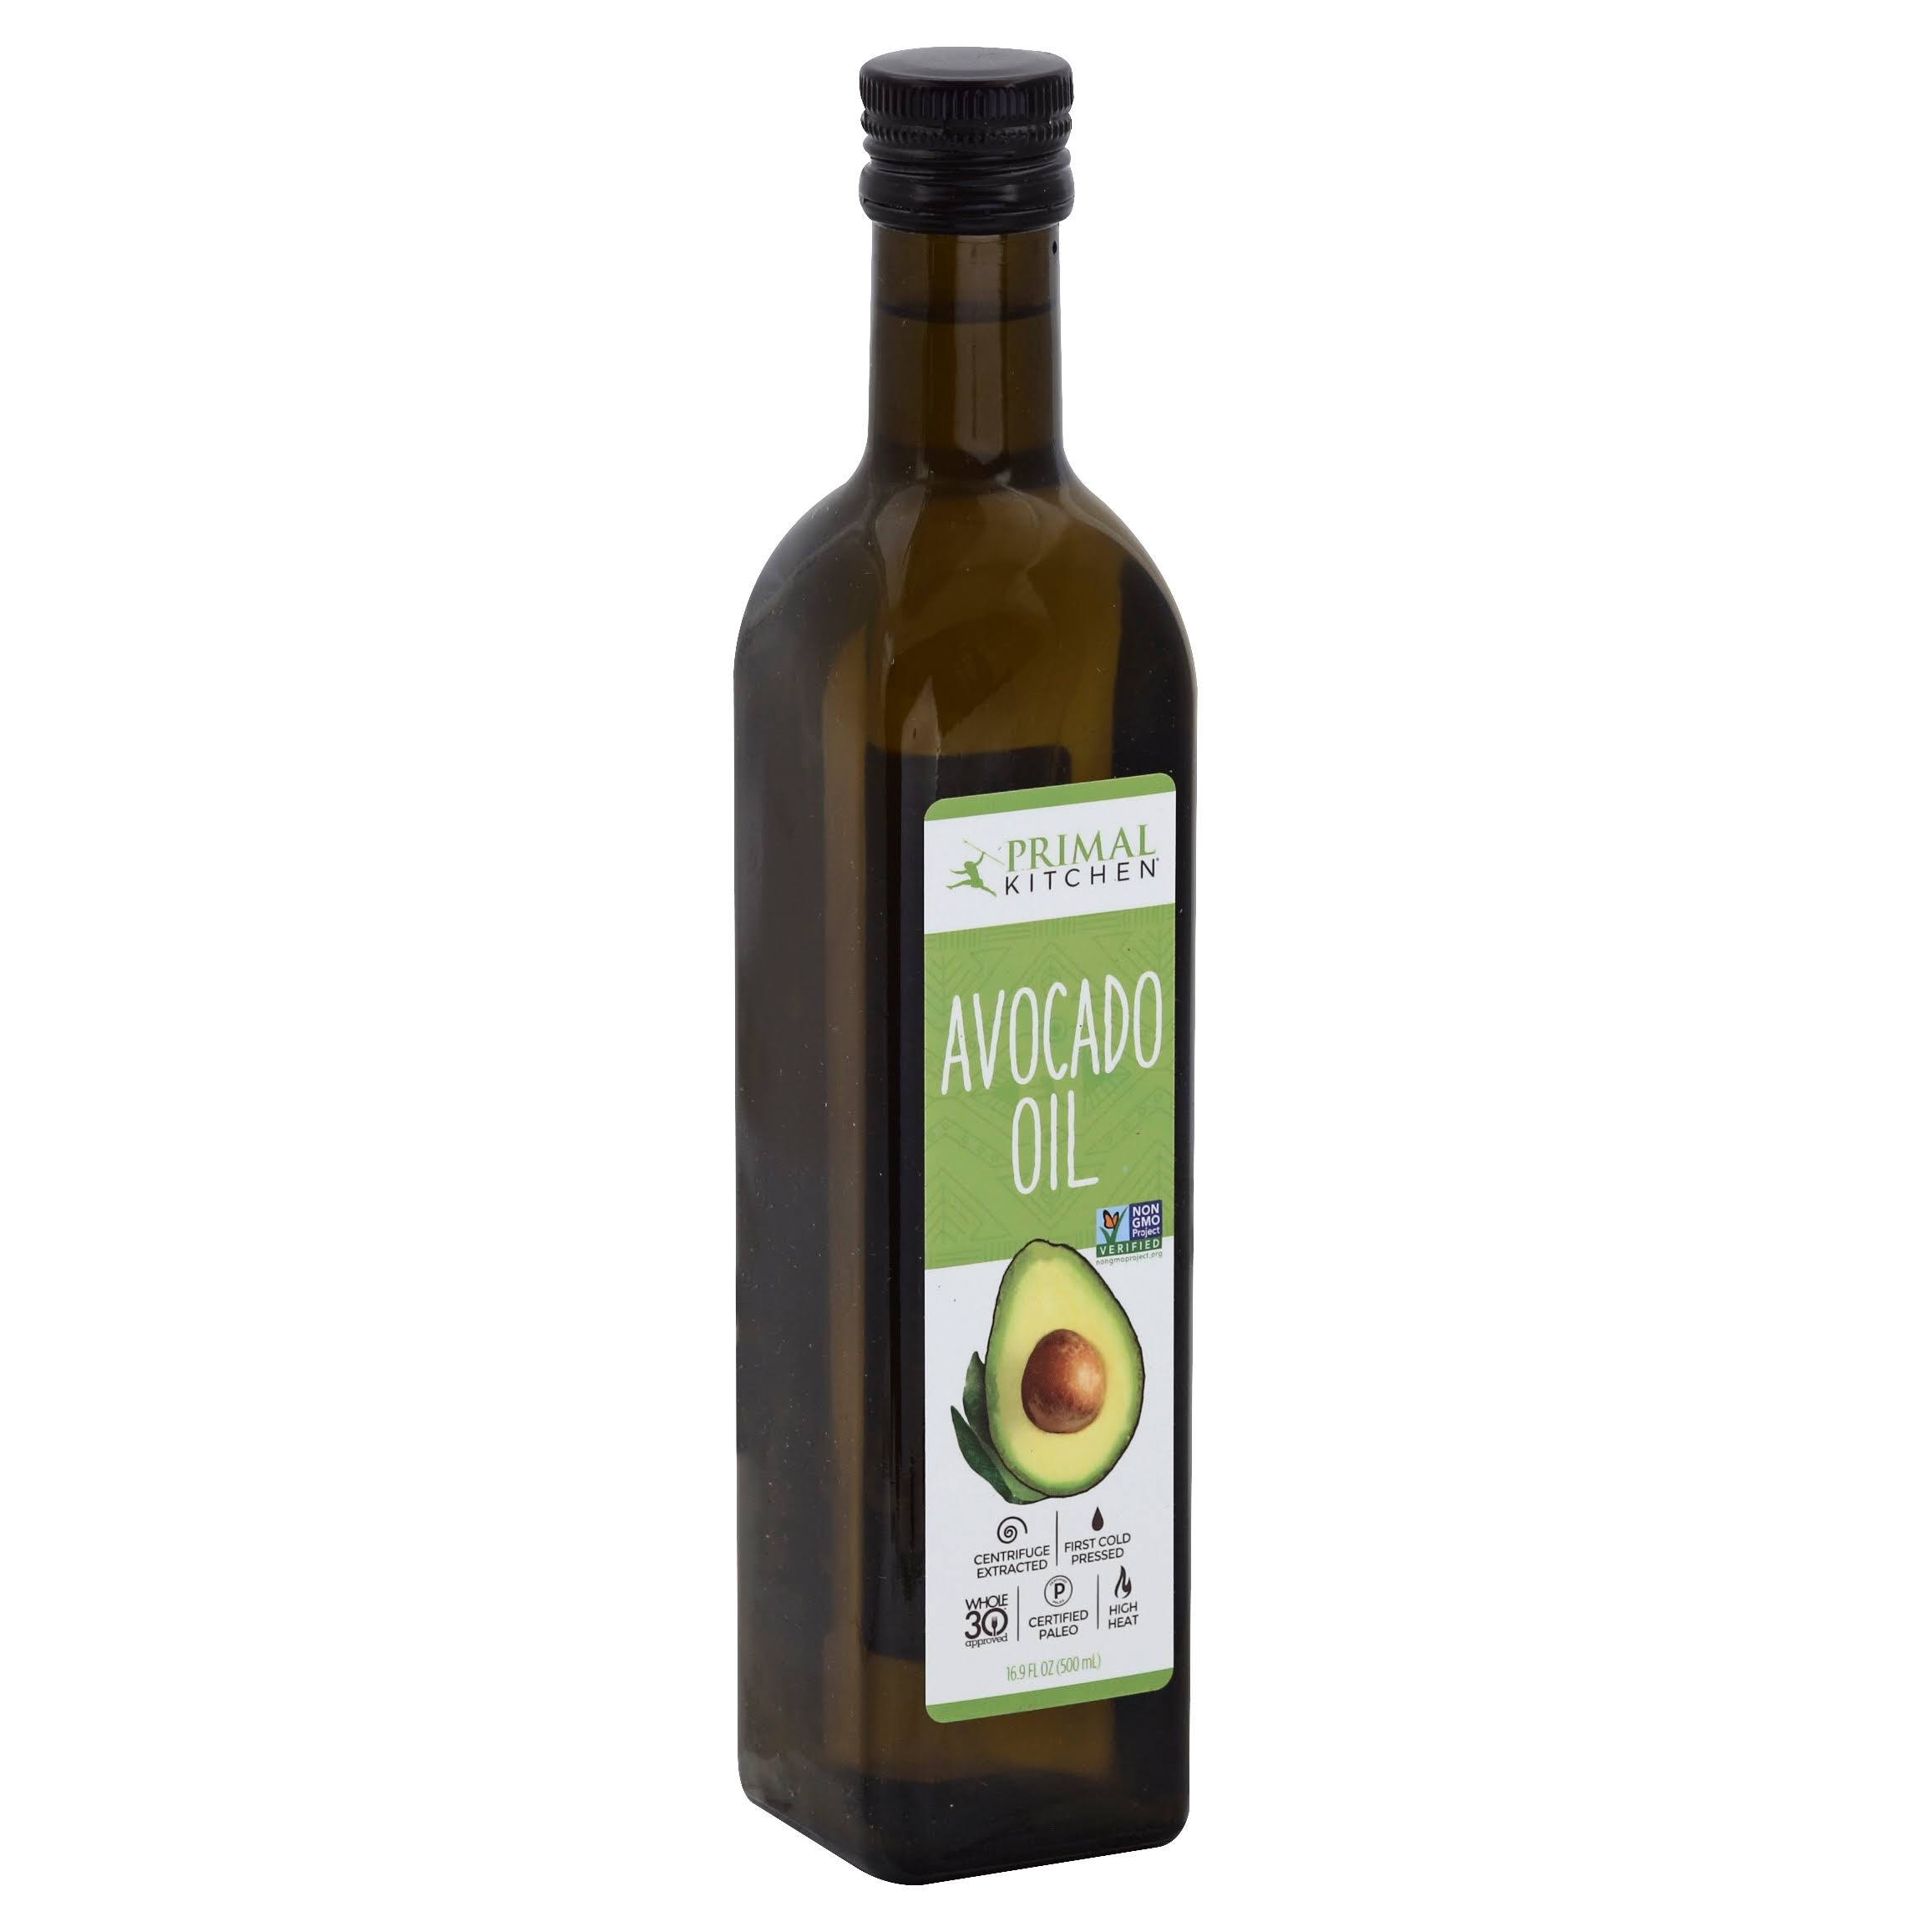 Primal Kitchen Avocado Oil - 16.9oz